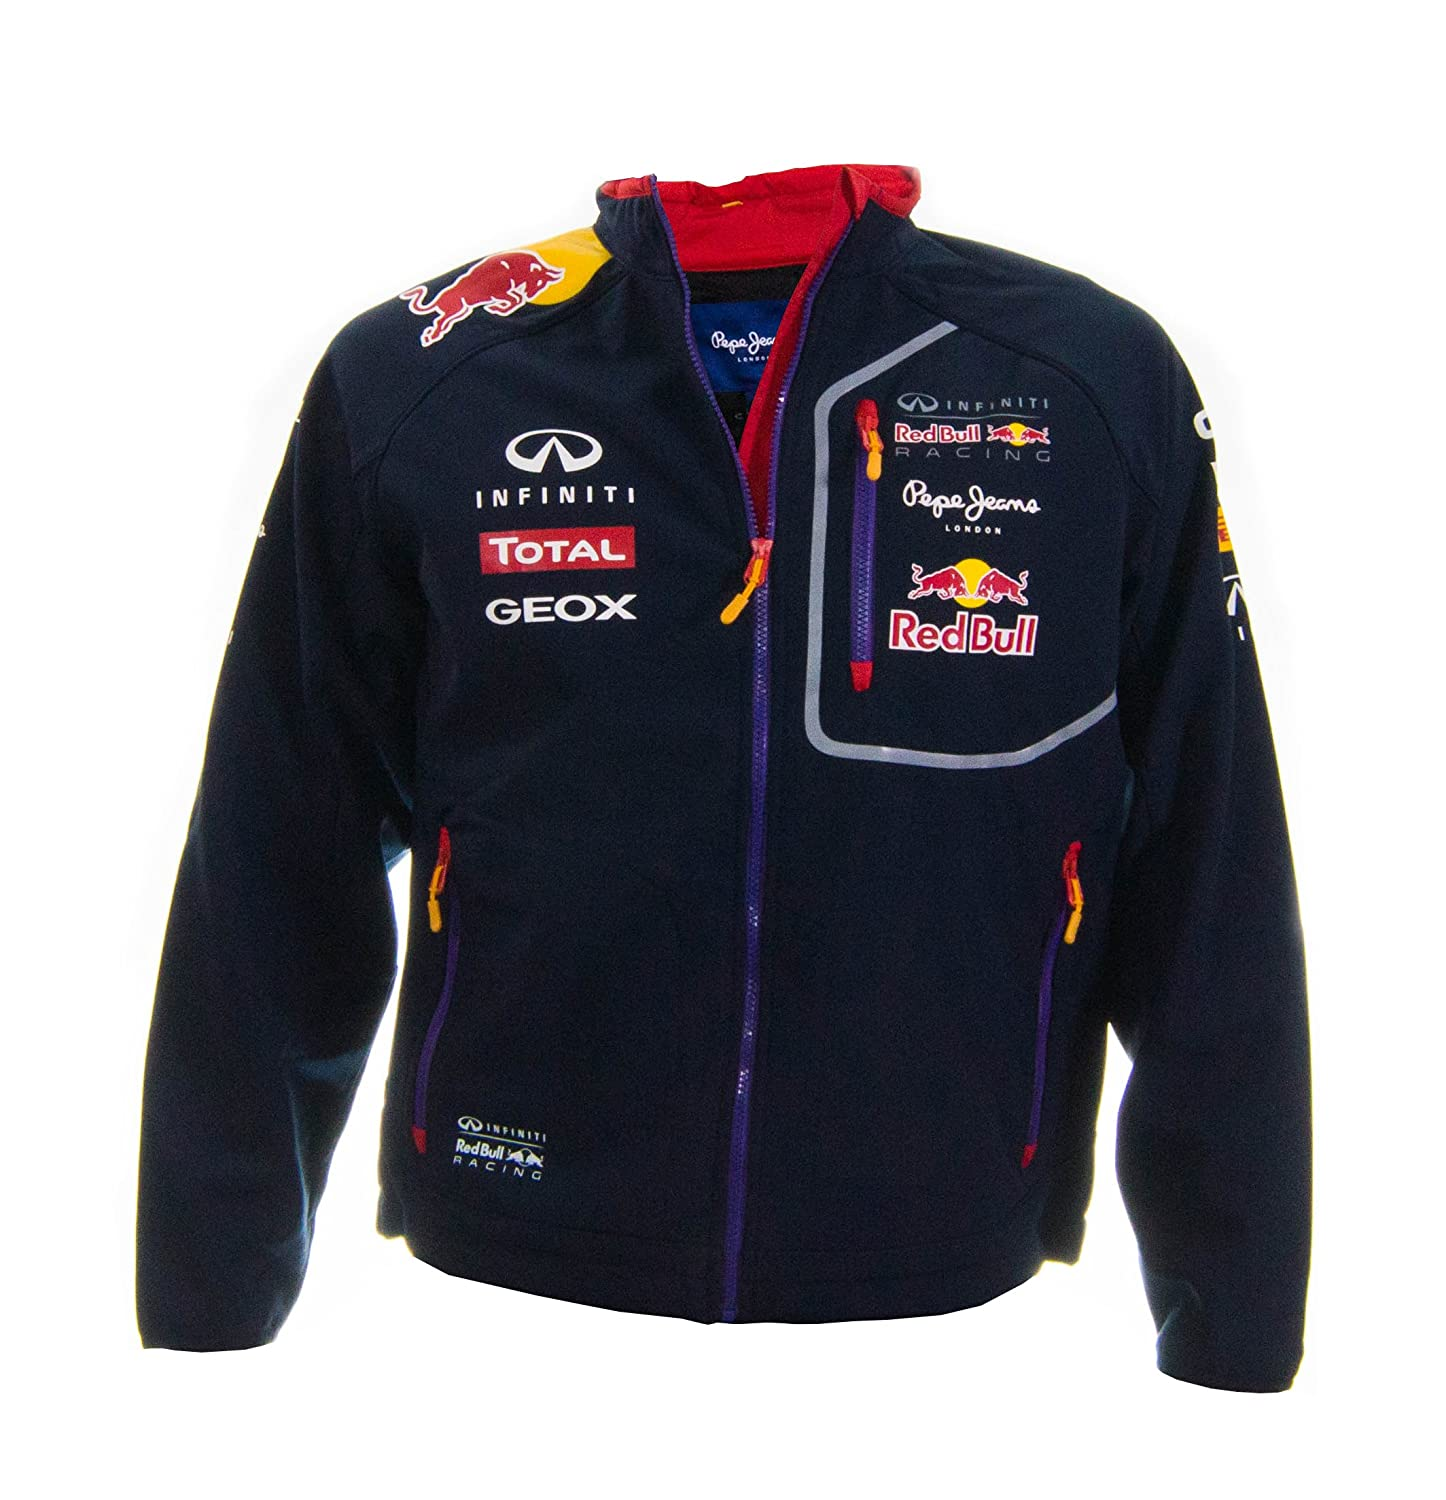 new mens pepe jeans infiniti red bull soft shell formula 1 motor racing jacket ebay. Black Bedroom Furniture Sets. Home Design Ideas